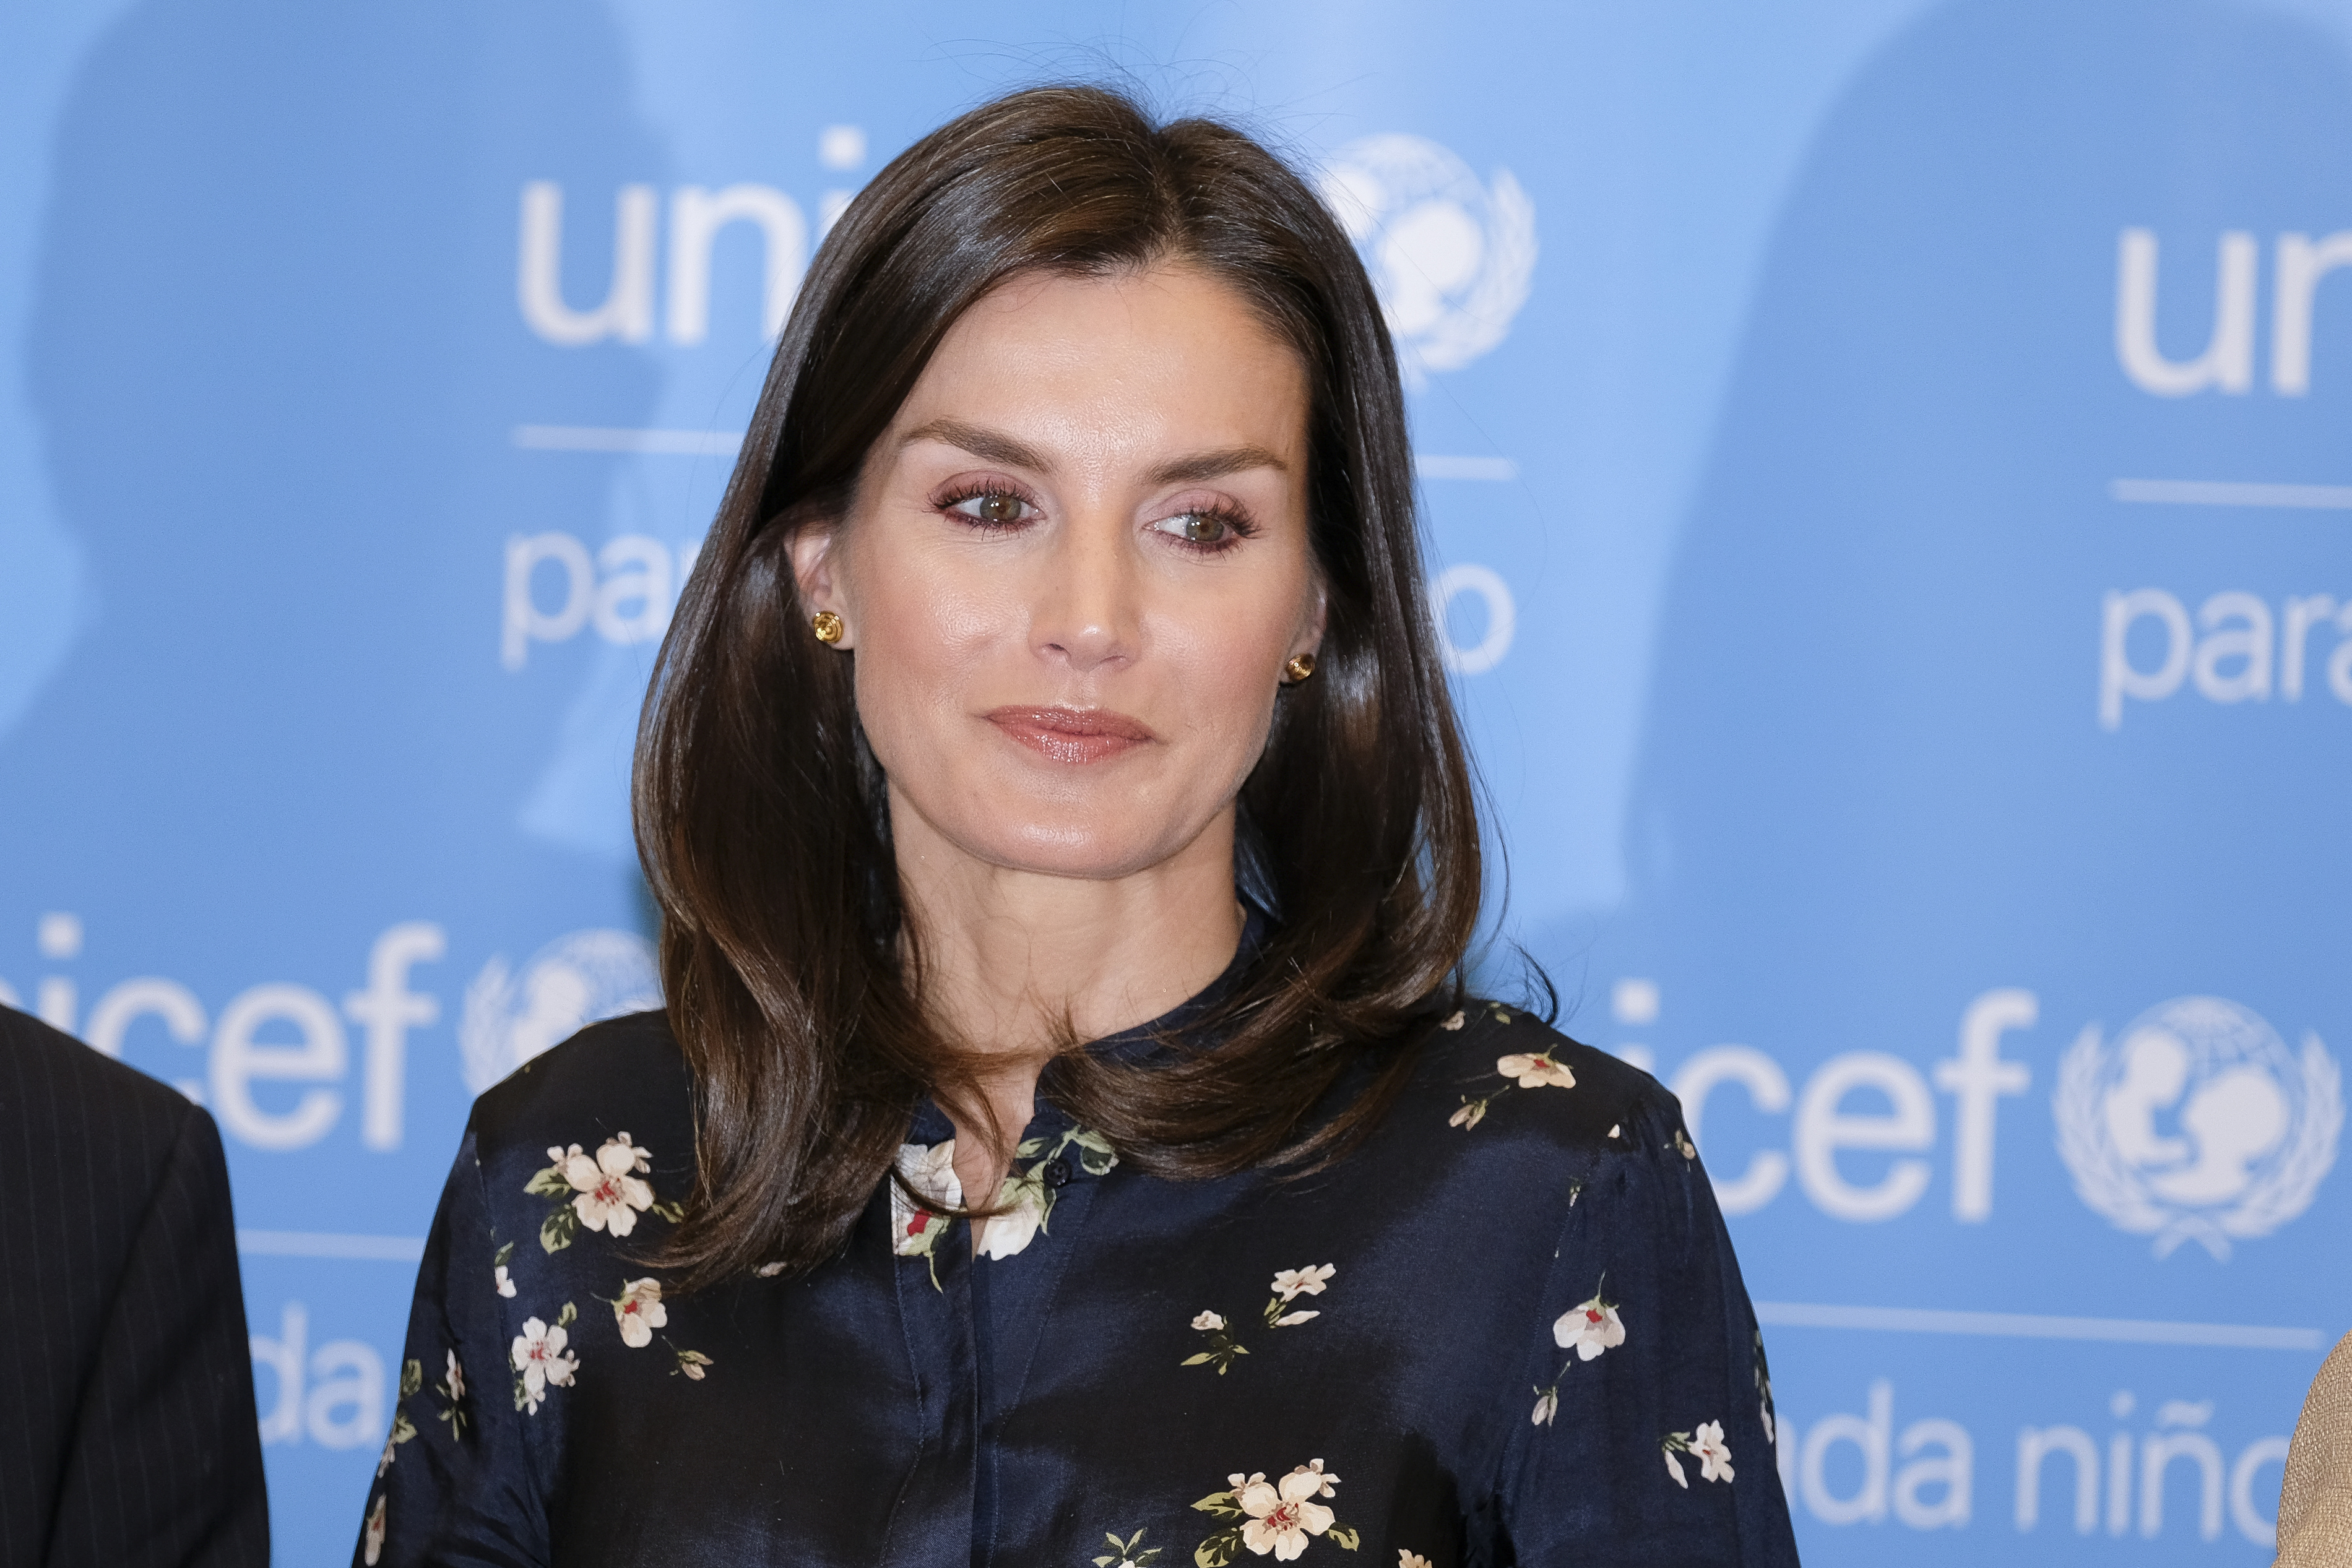 Queen Letizia Of Spain Attends UNICEF Spanish Committee Awards 2019